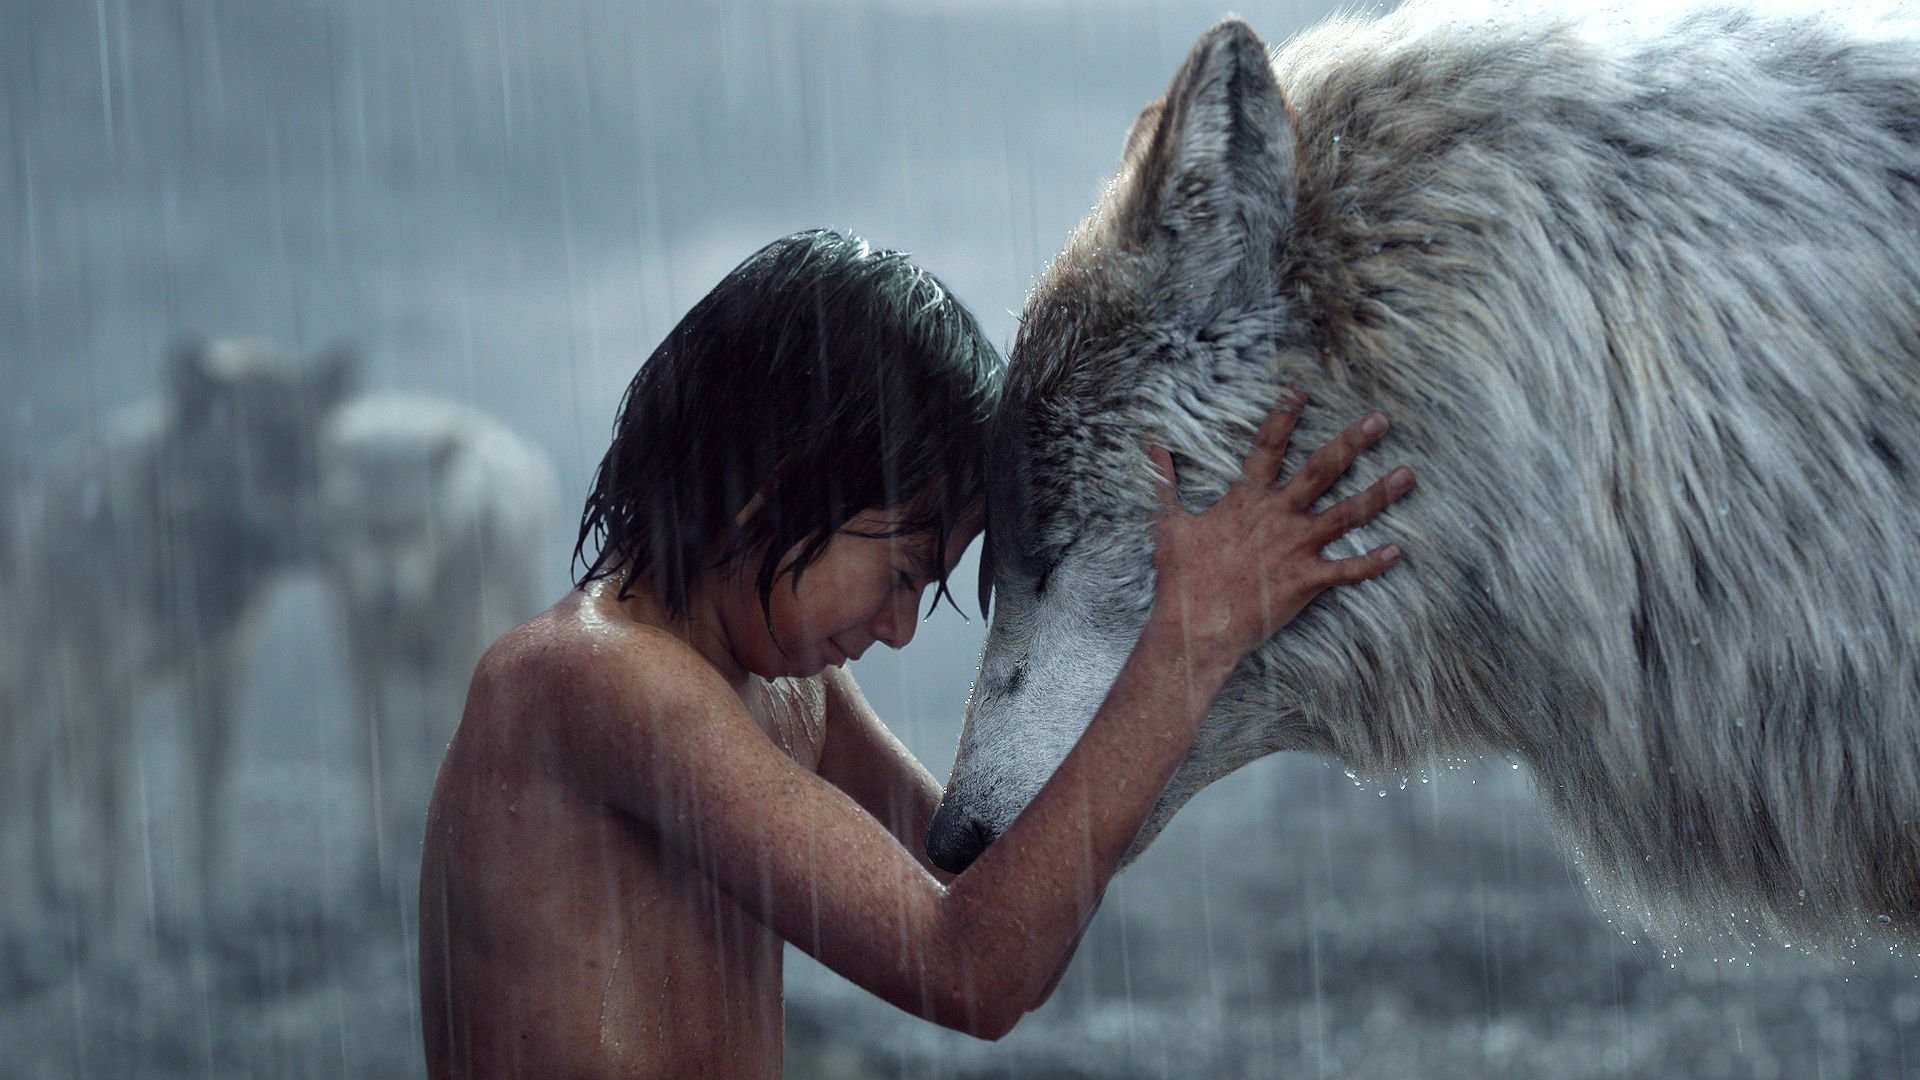 free download the jungle book movie (2016) wallpaper id:86426 full